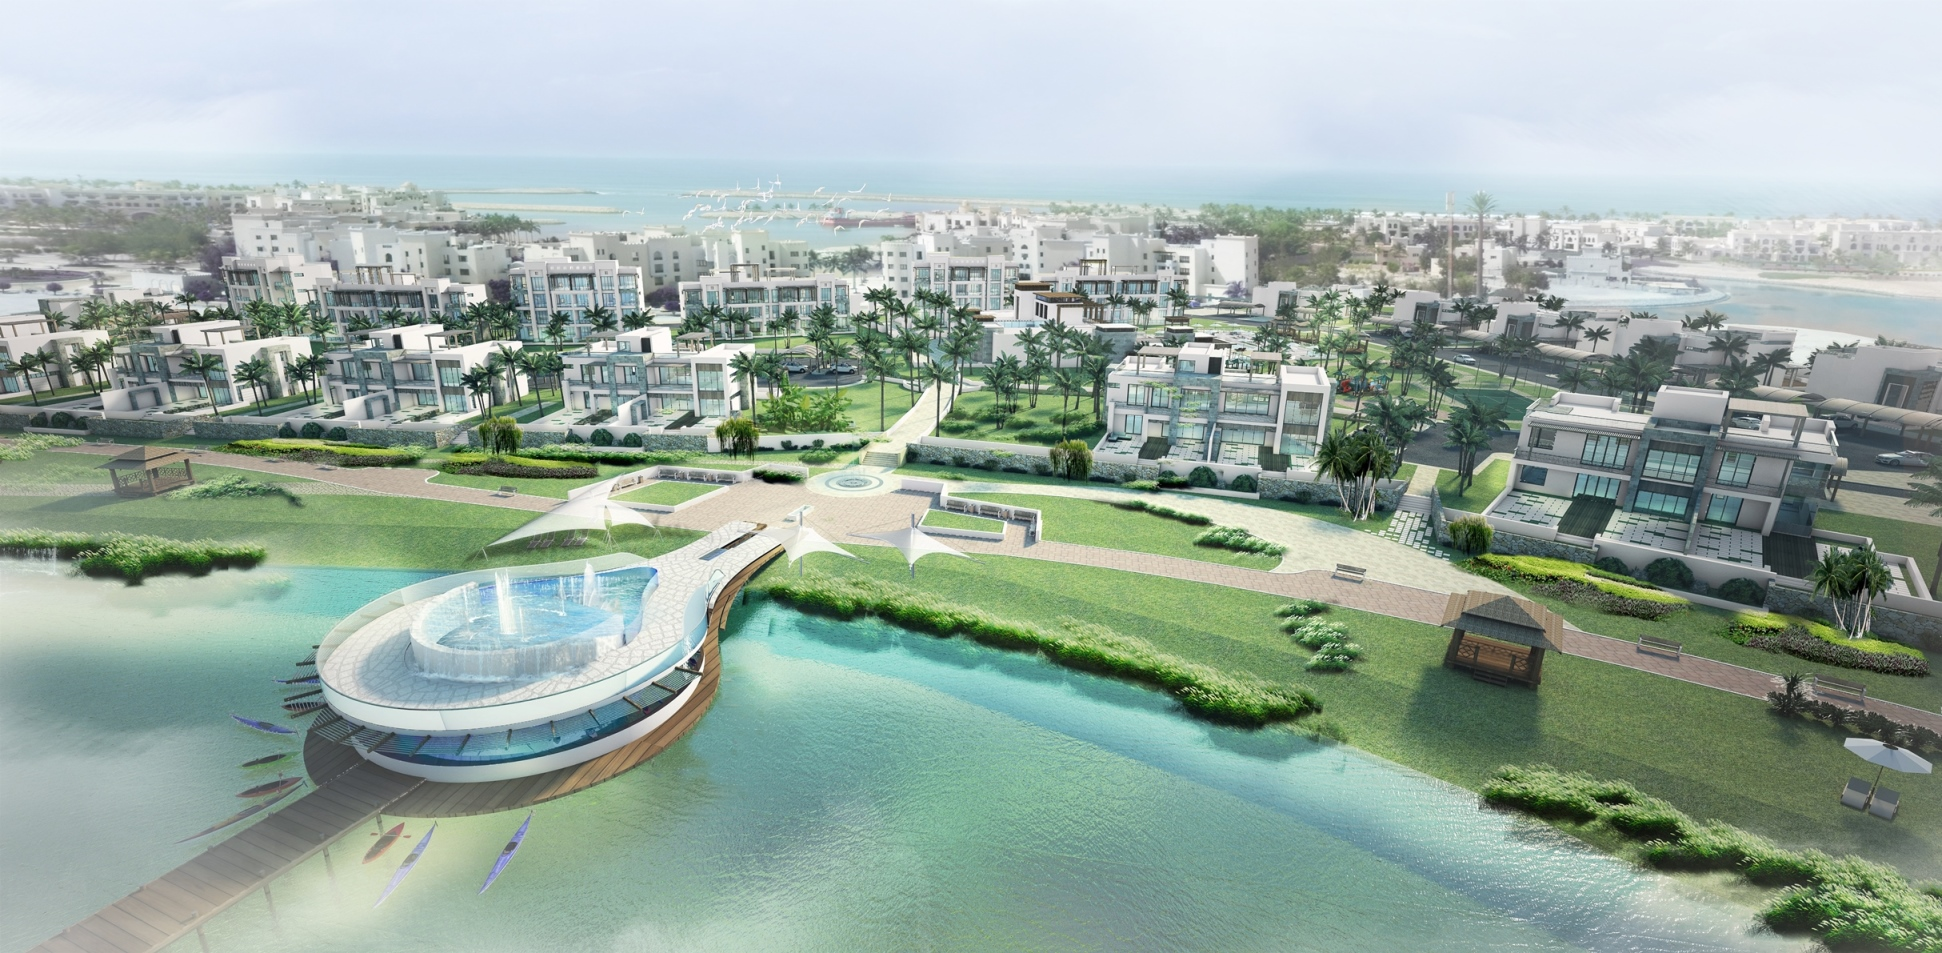 Muriya launches phase II of Lagoons in Hawana Salalah